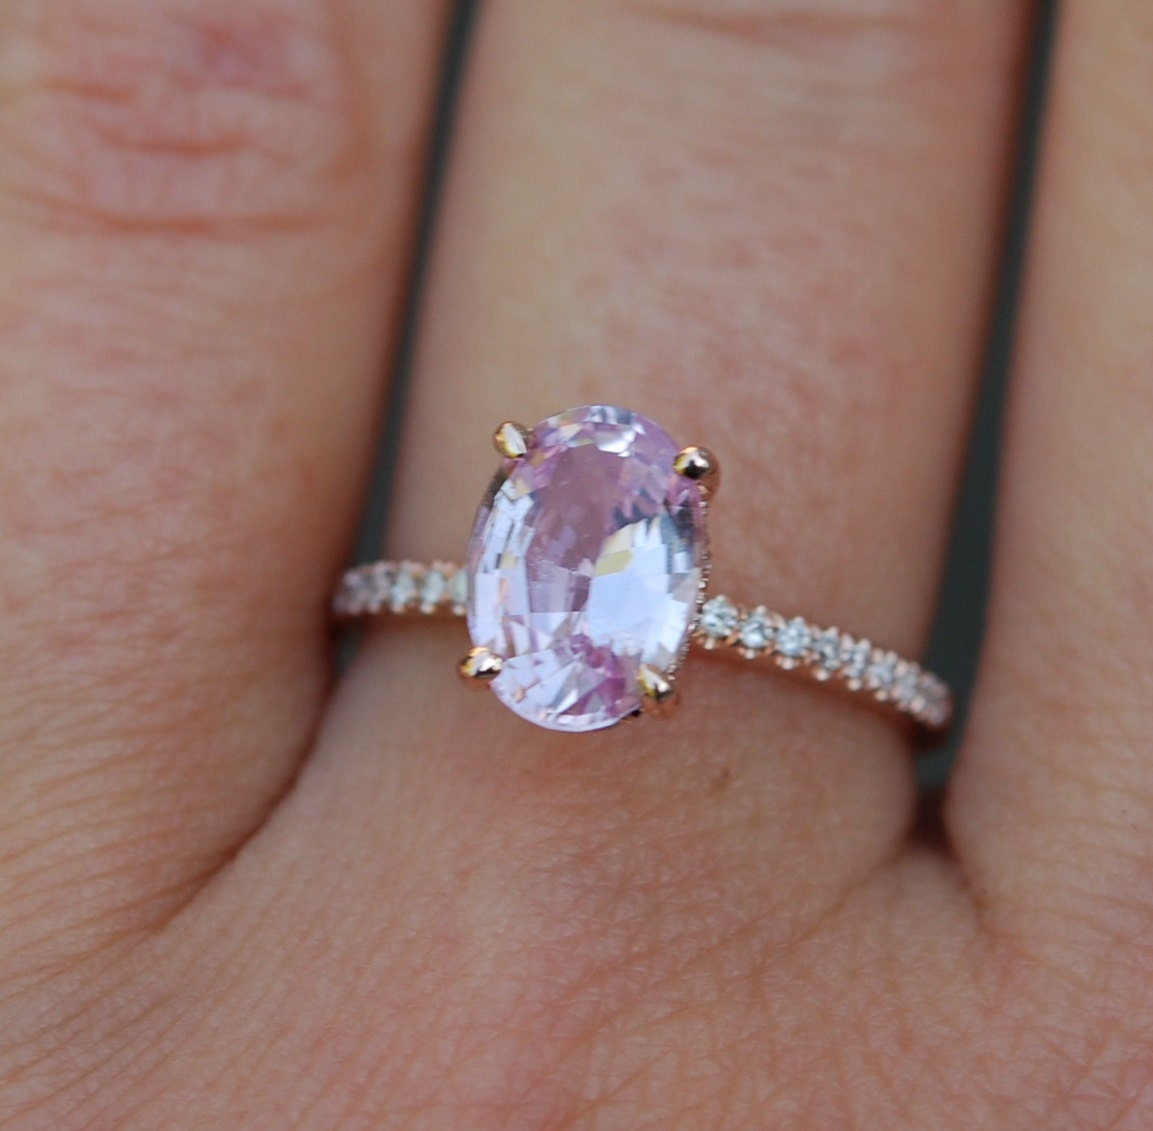 Rose gold engagement ring Peach sapphire 2 12ct diamond ring